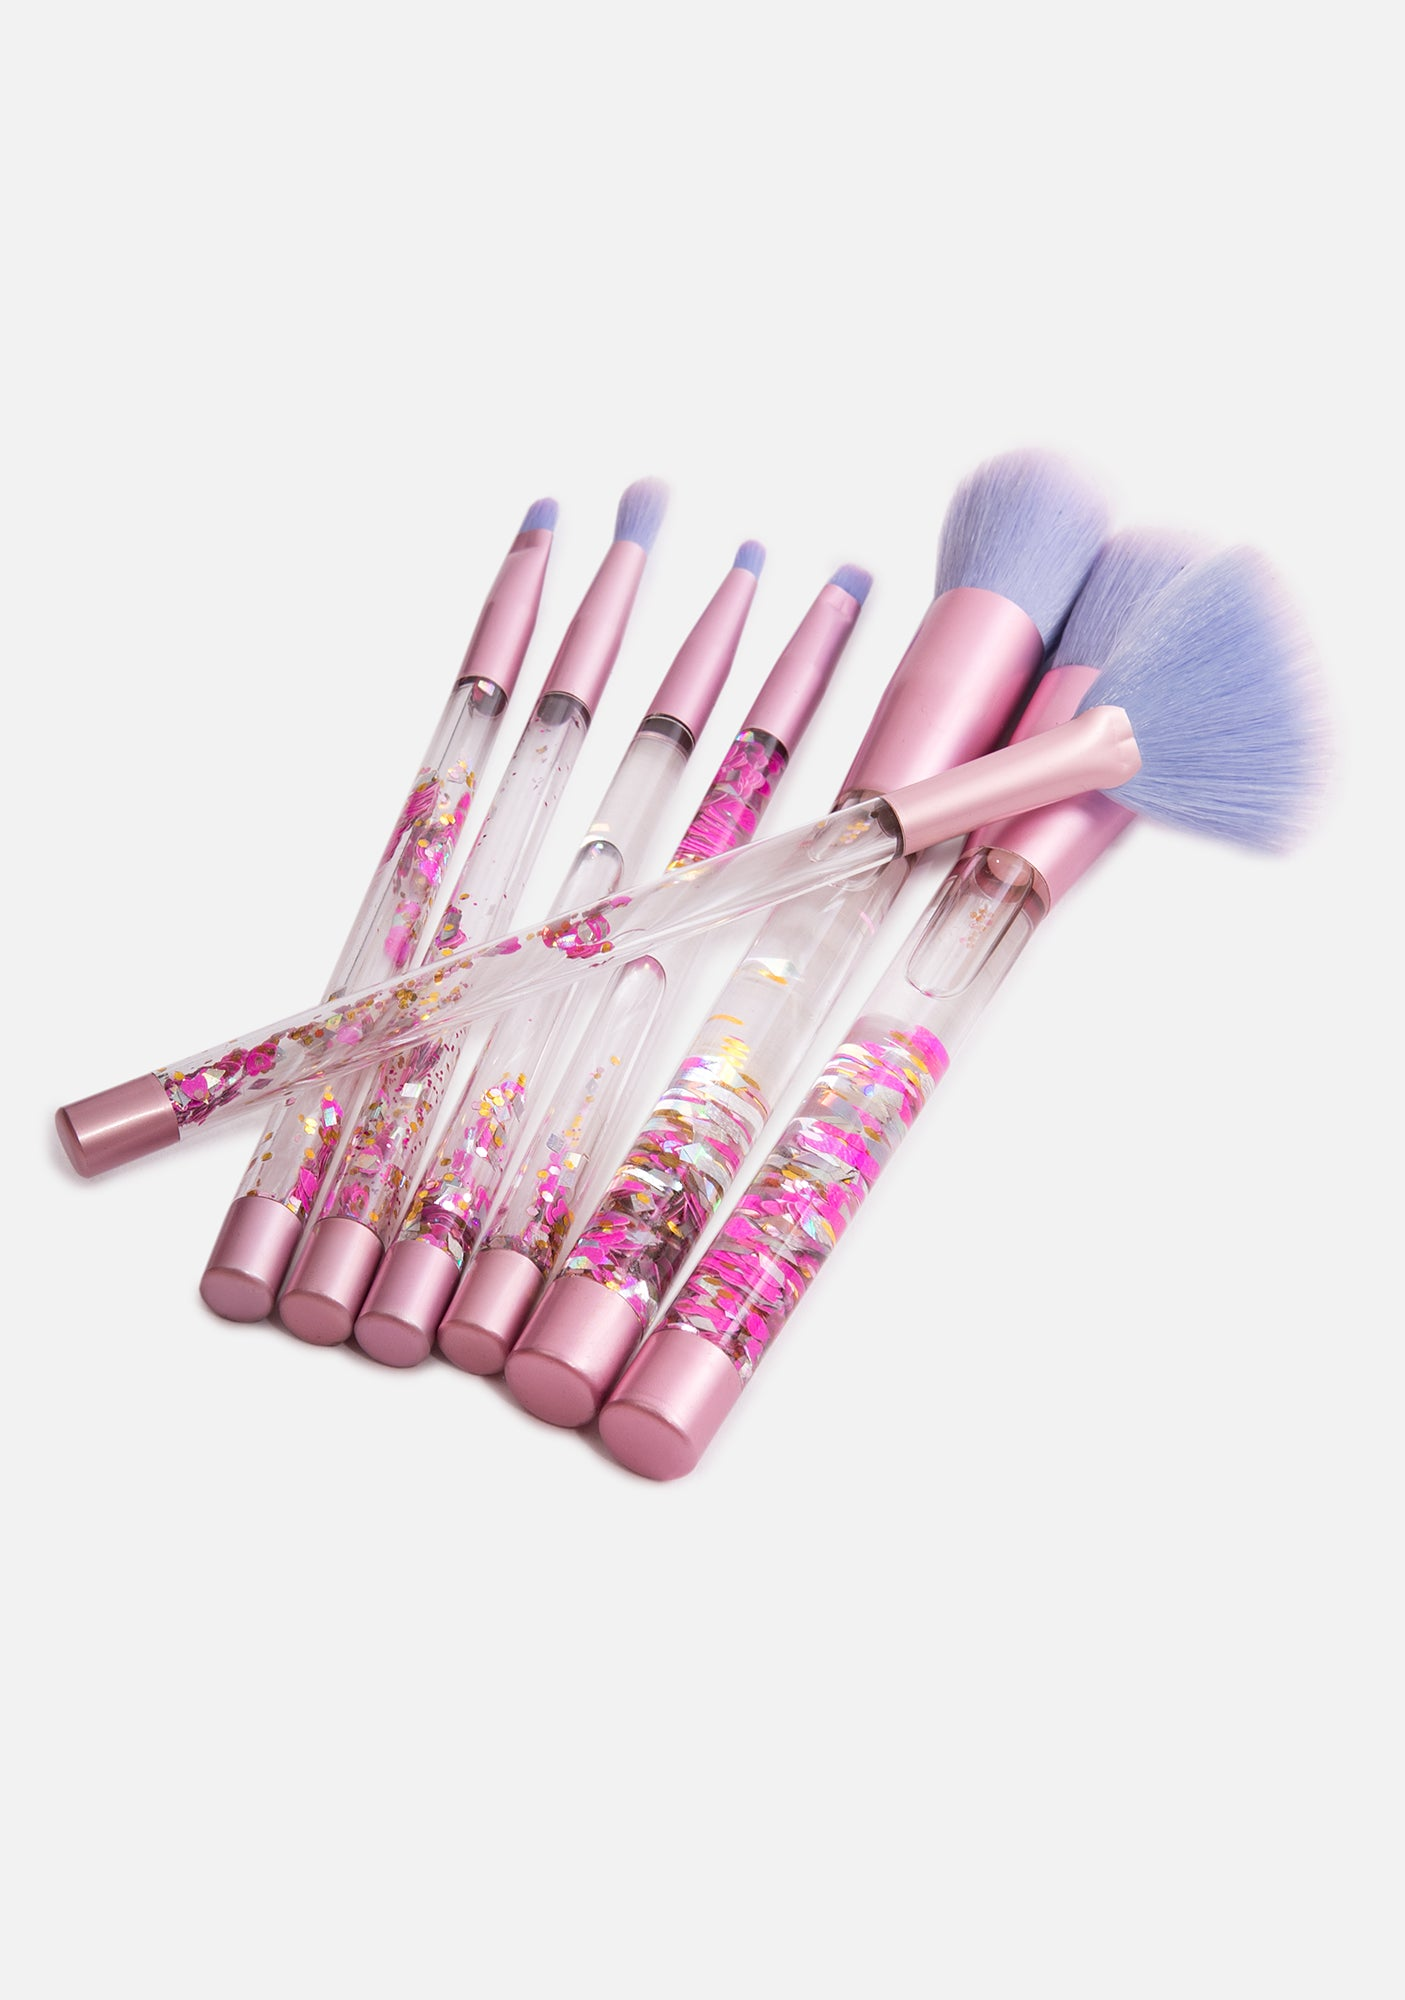 90s Dream Make Up Brushes